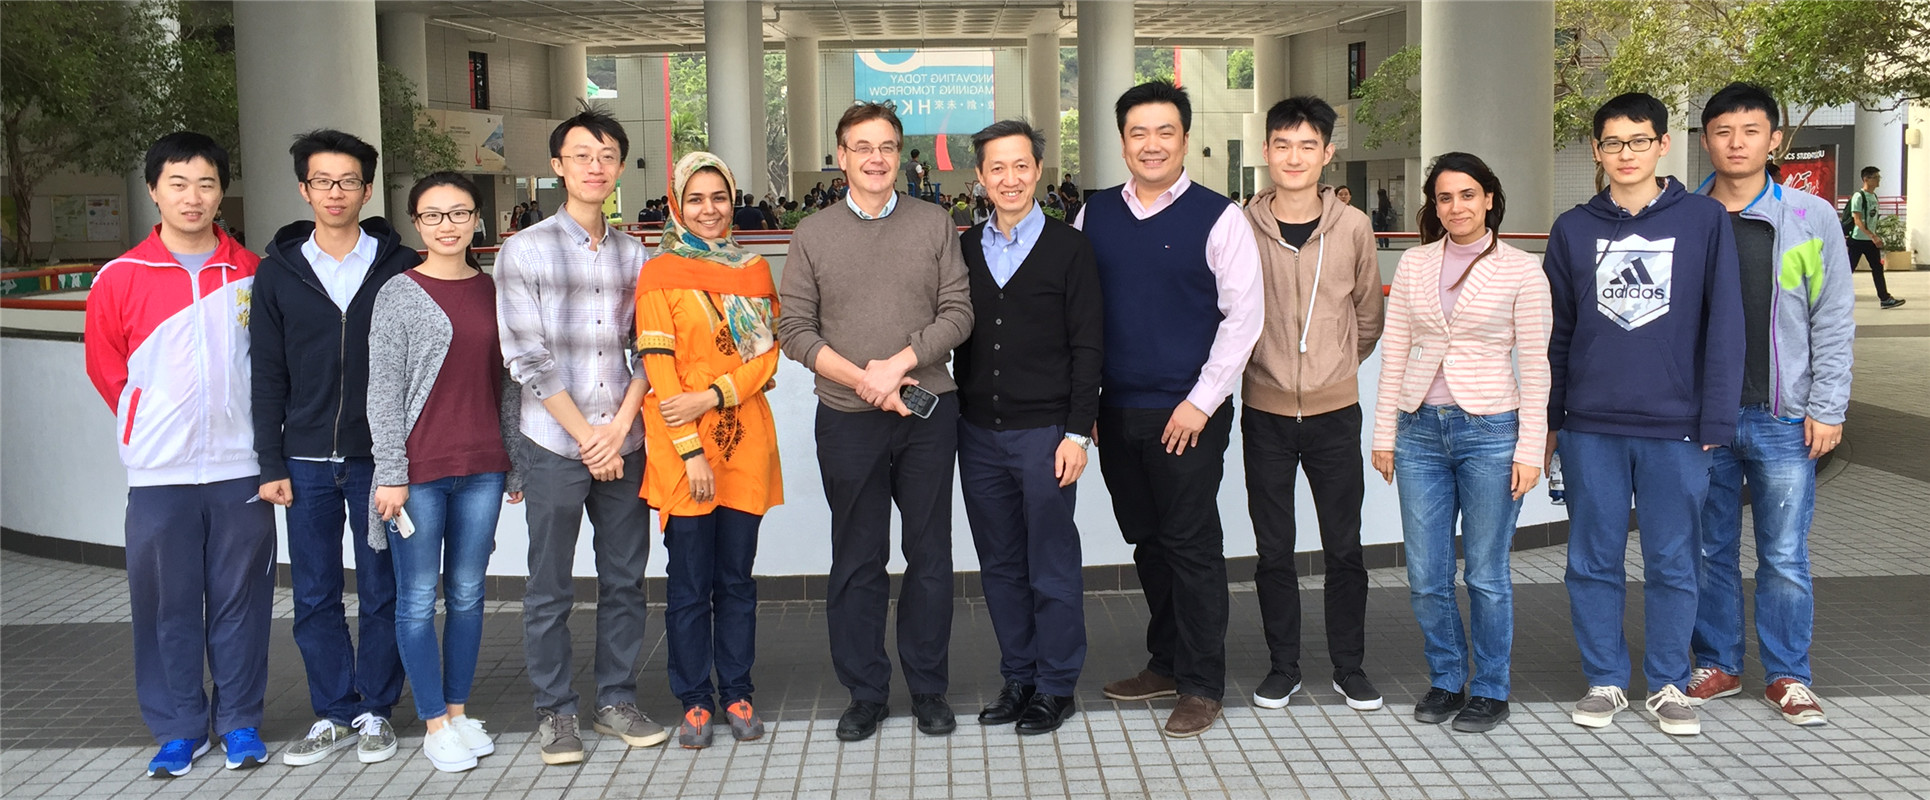 Prof. Keith Ross visited our group